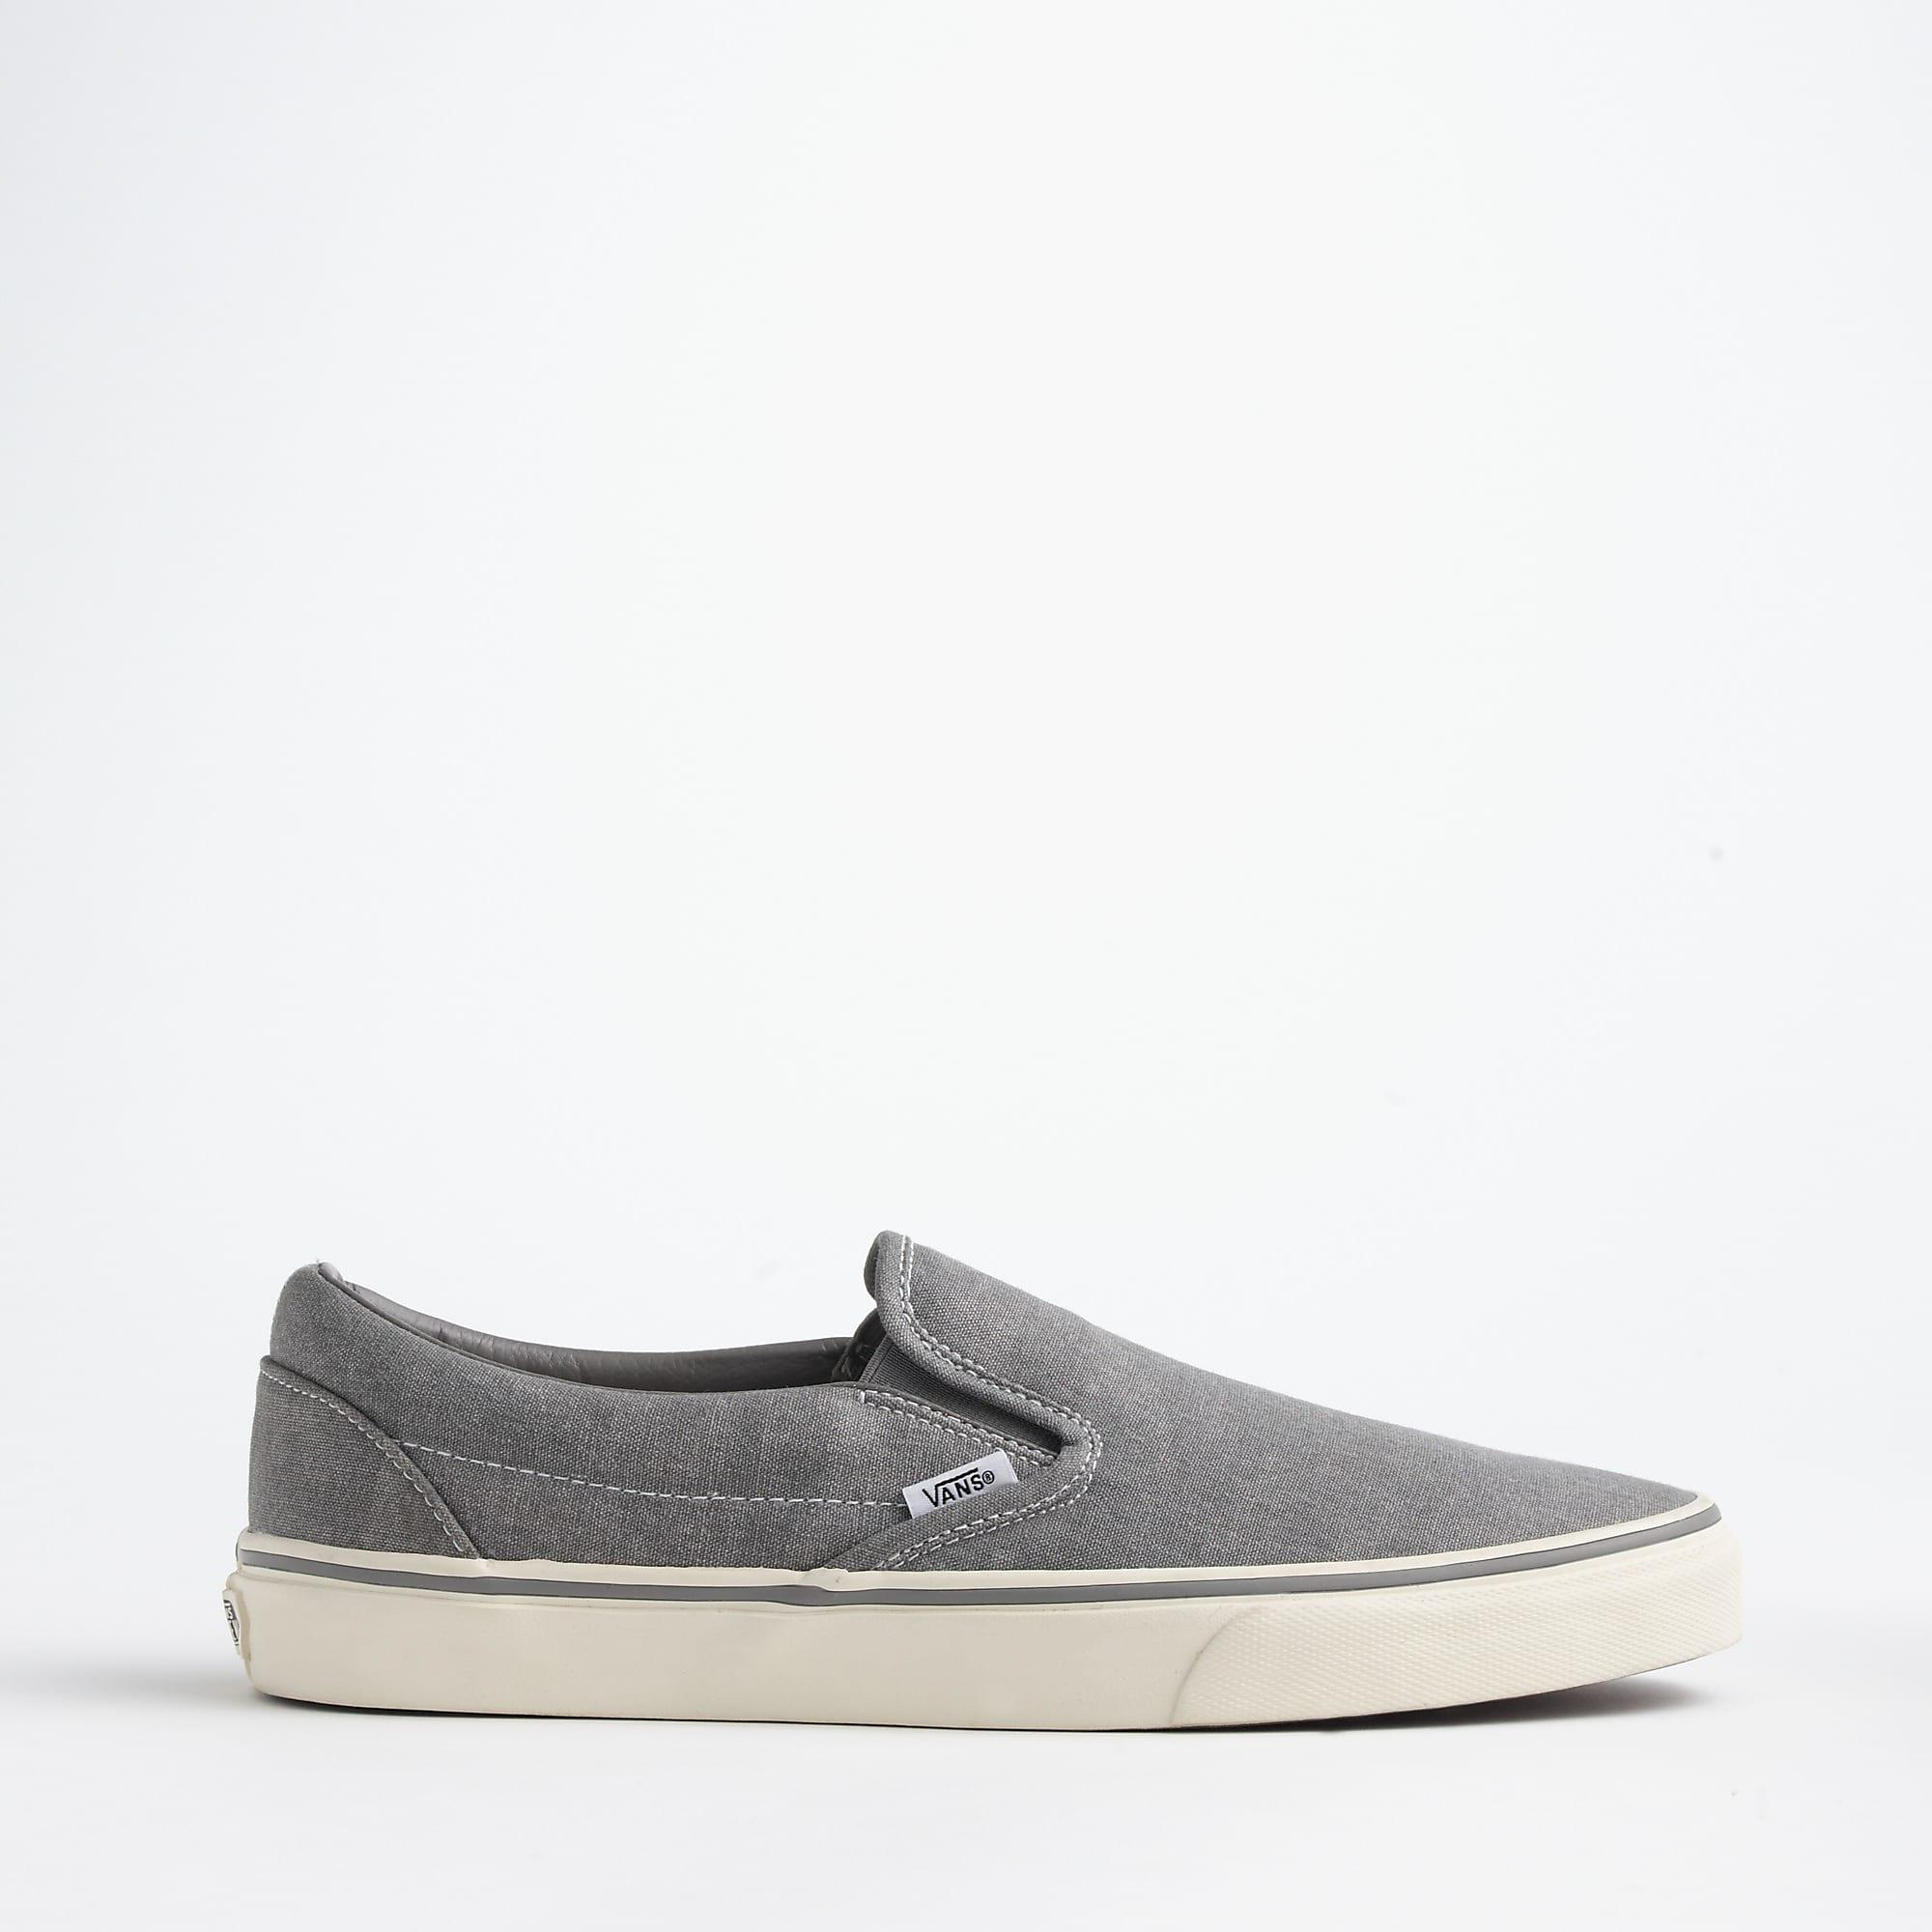 a77e708c30 Vans - Metallic Washed Canvas Classic Slip-on Sneakers for Men - Lyst. View  fullscreen